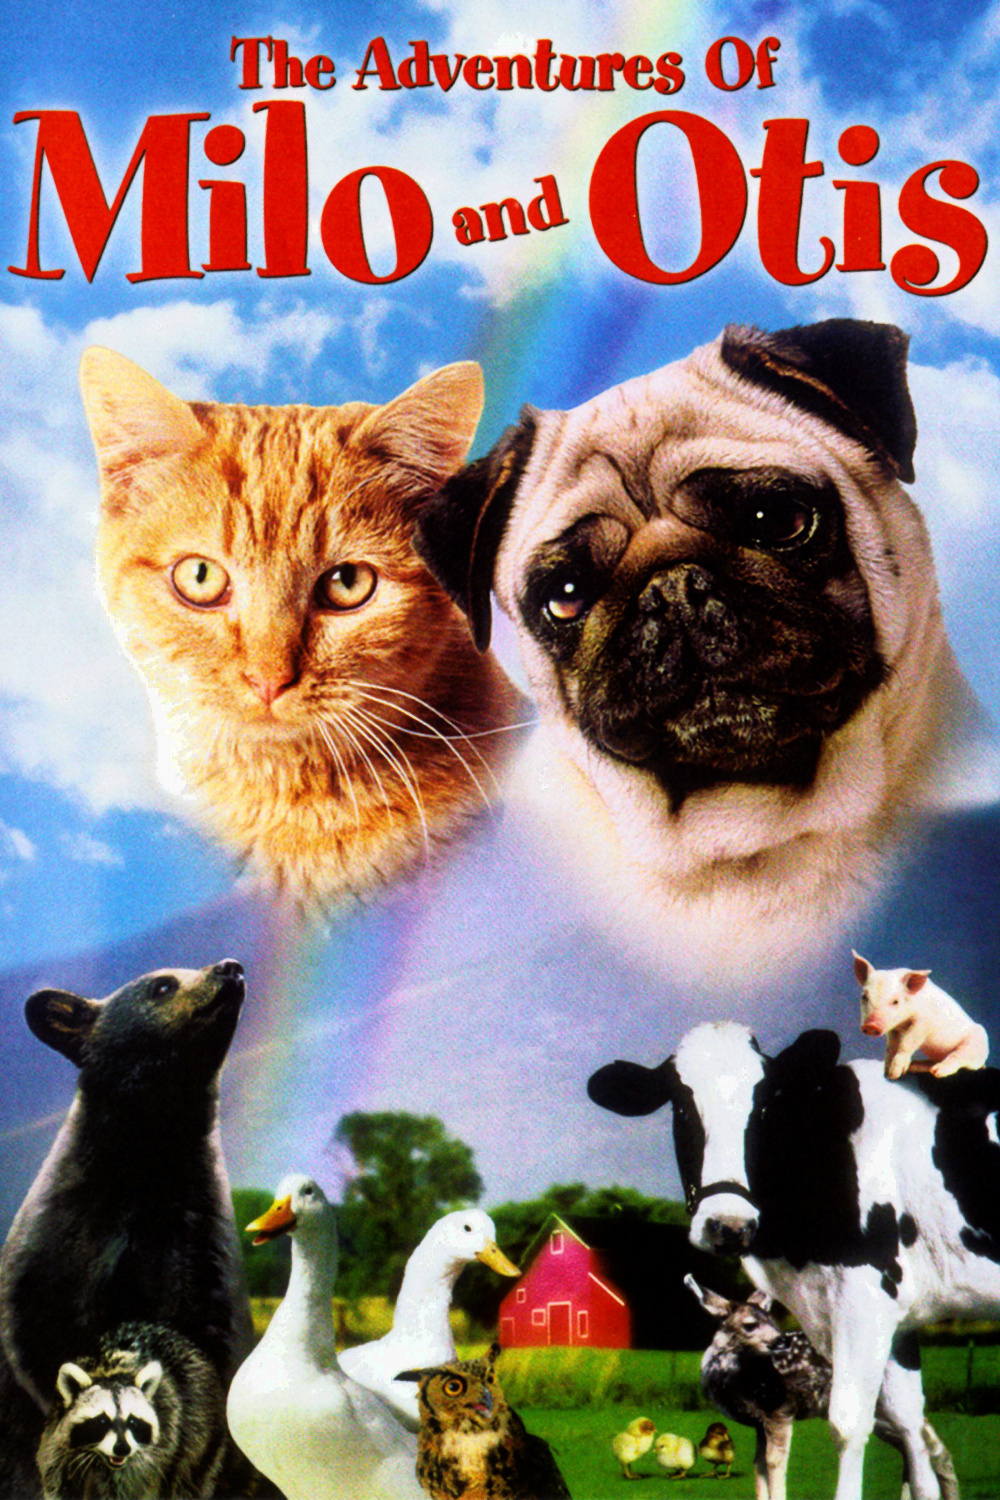 the adventures of milo and otis ending relationship